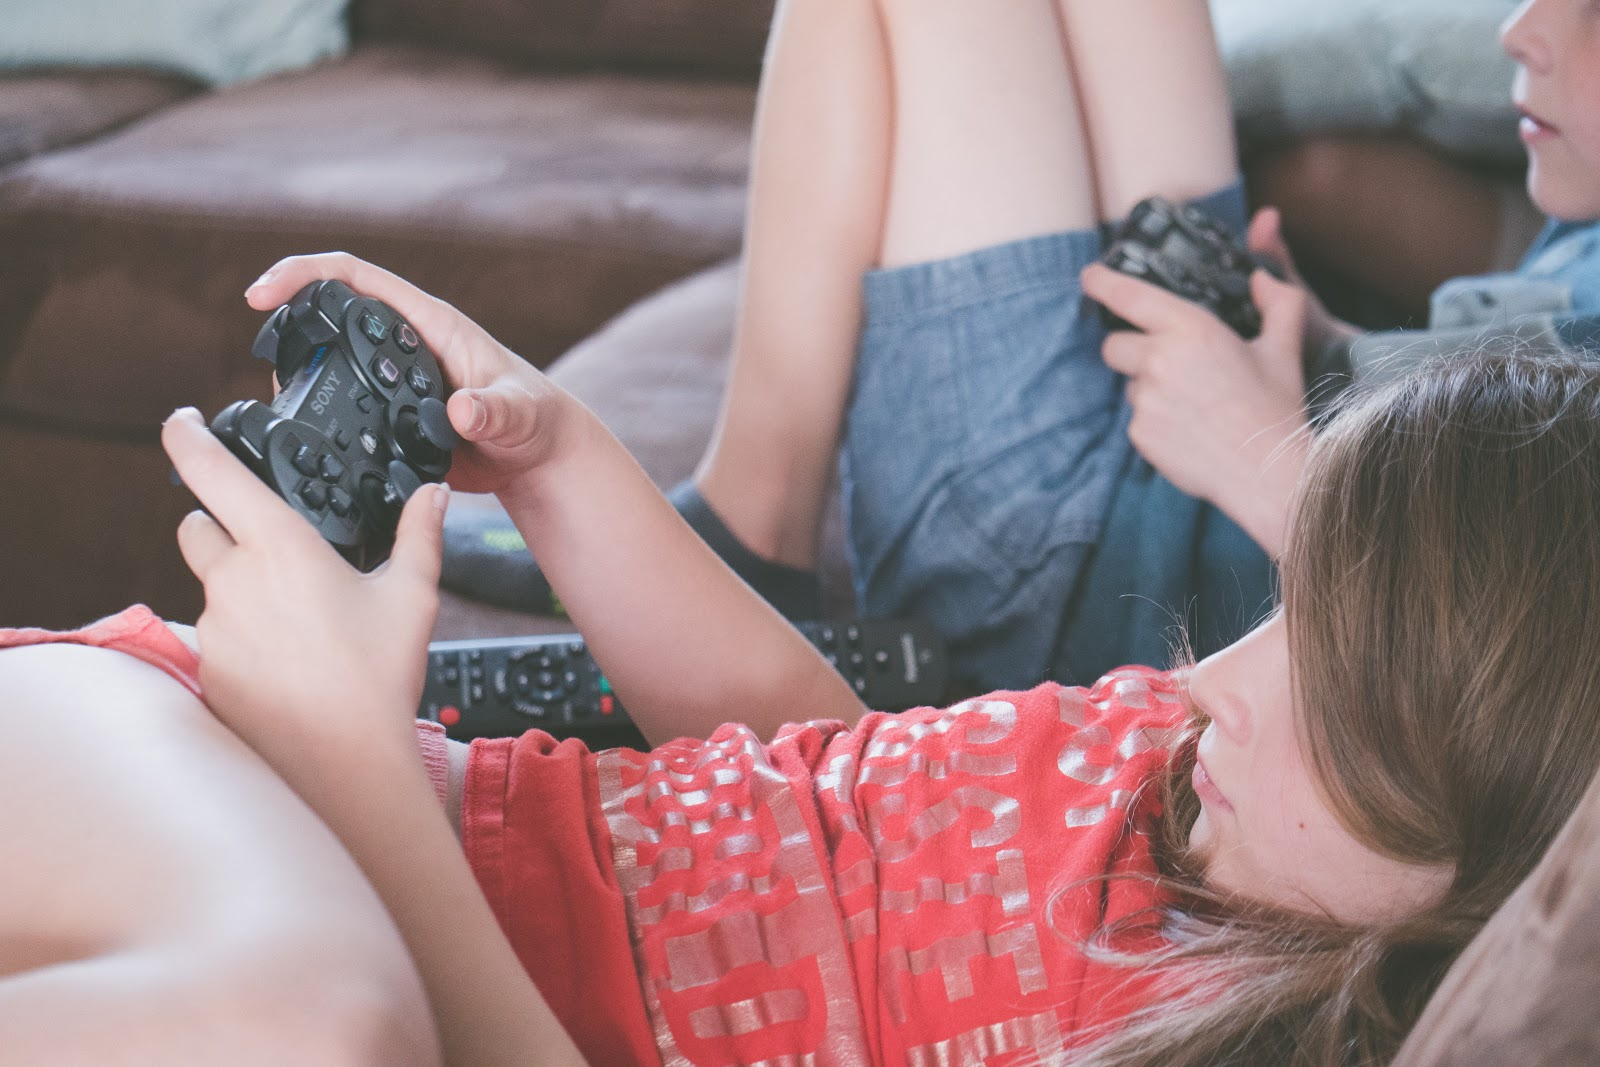 Two kids lounging on a sofa holding game controllers.